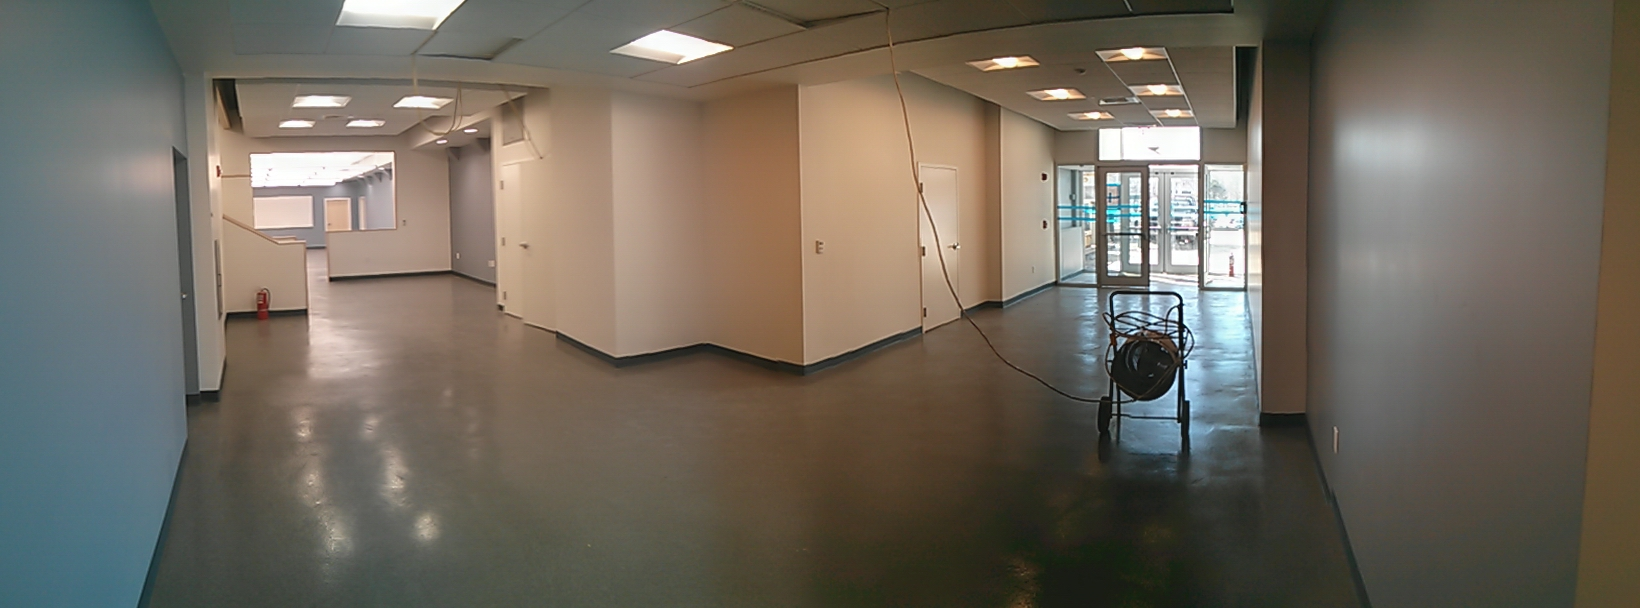 panorama view of entry and classroom